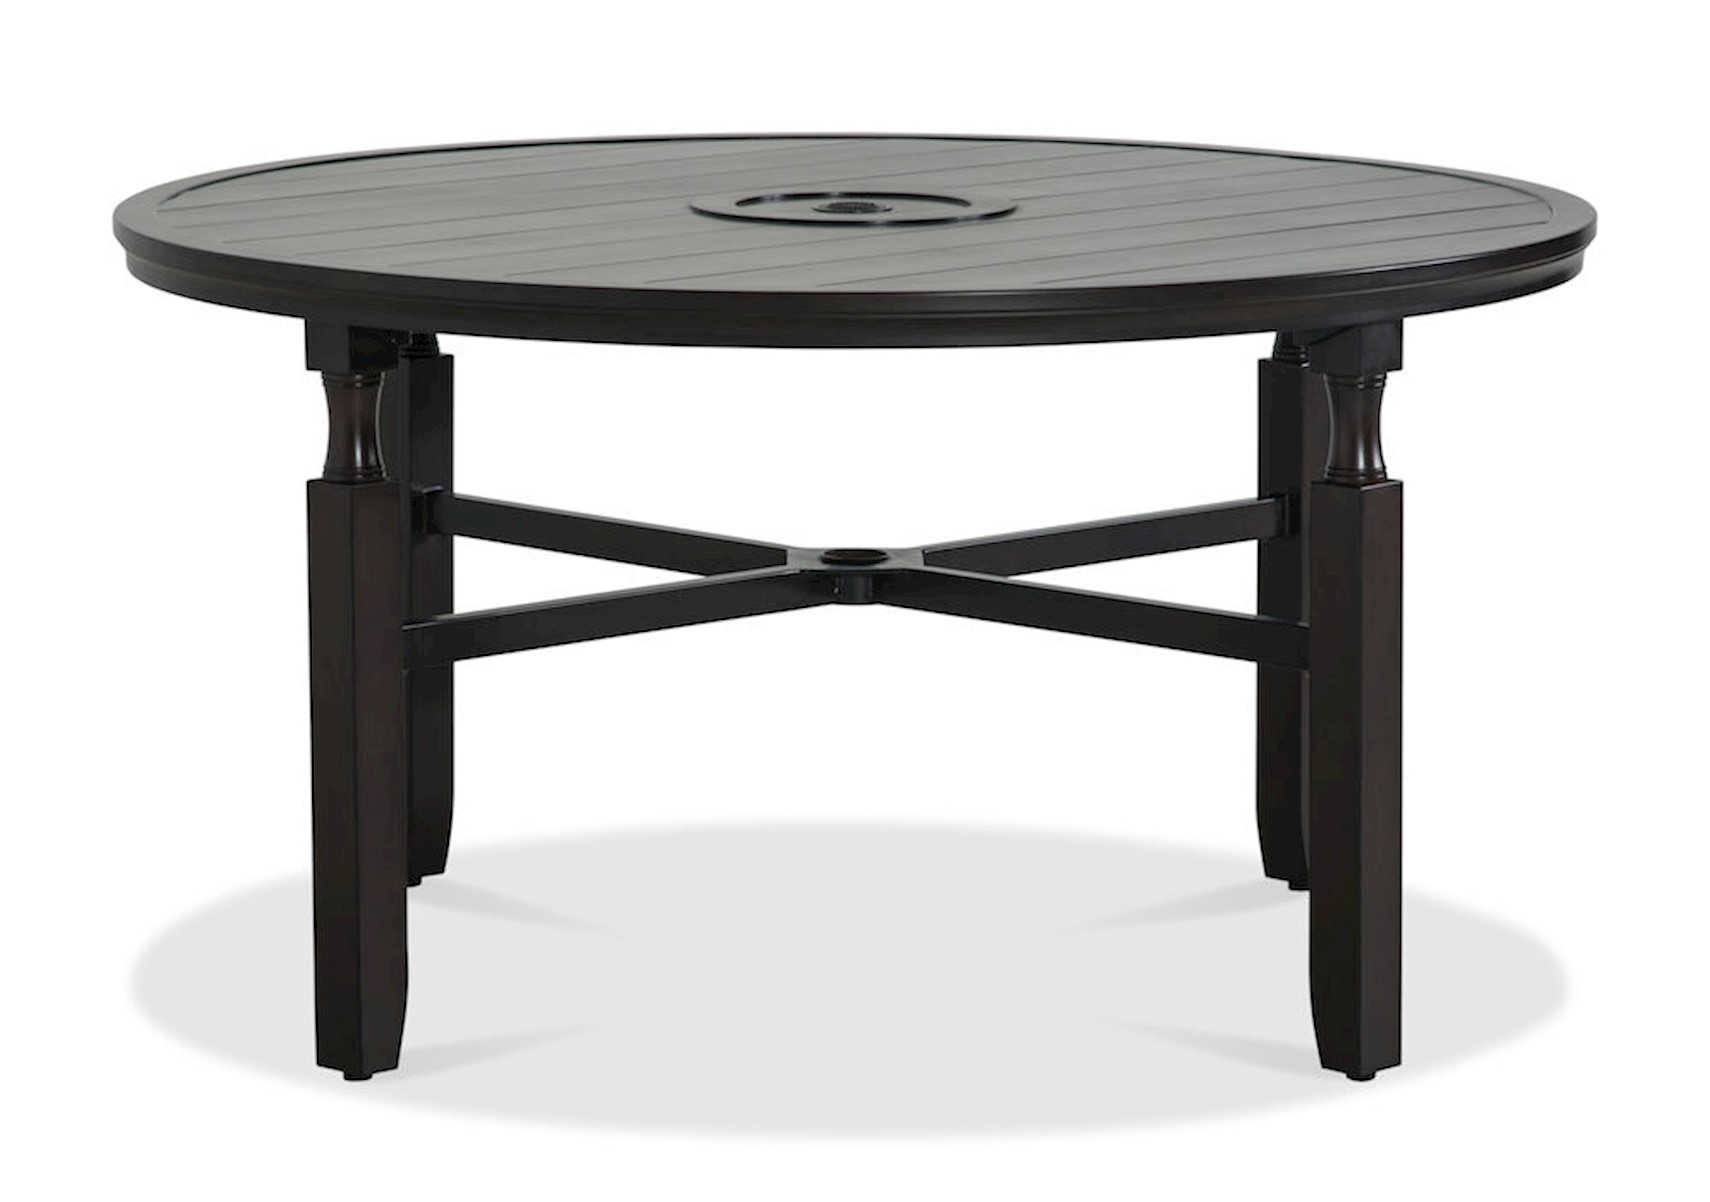 Image of: Lacks Paula Deen River House 54 Outdoor Round Dining Table